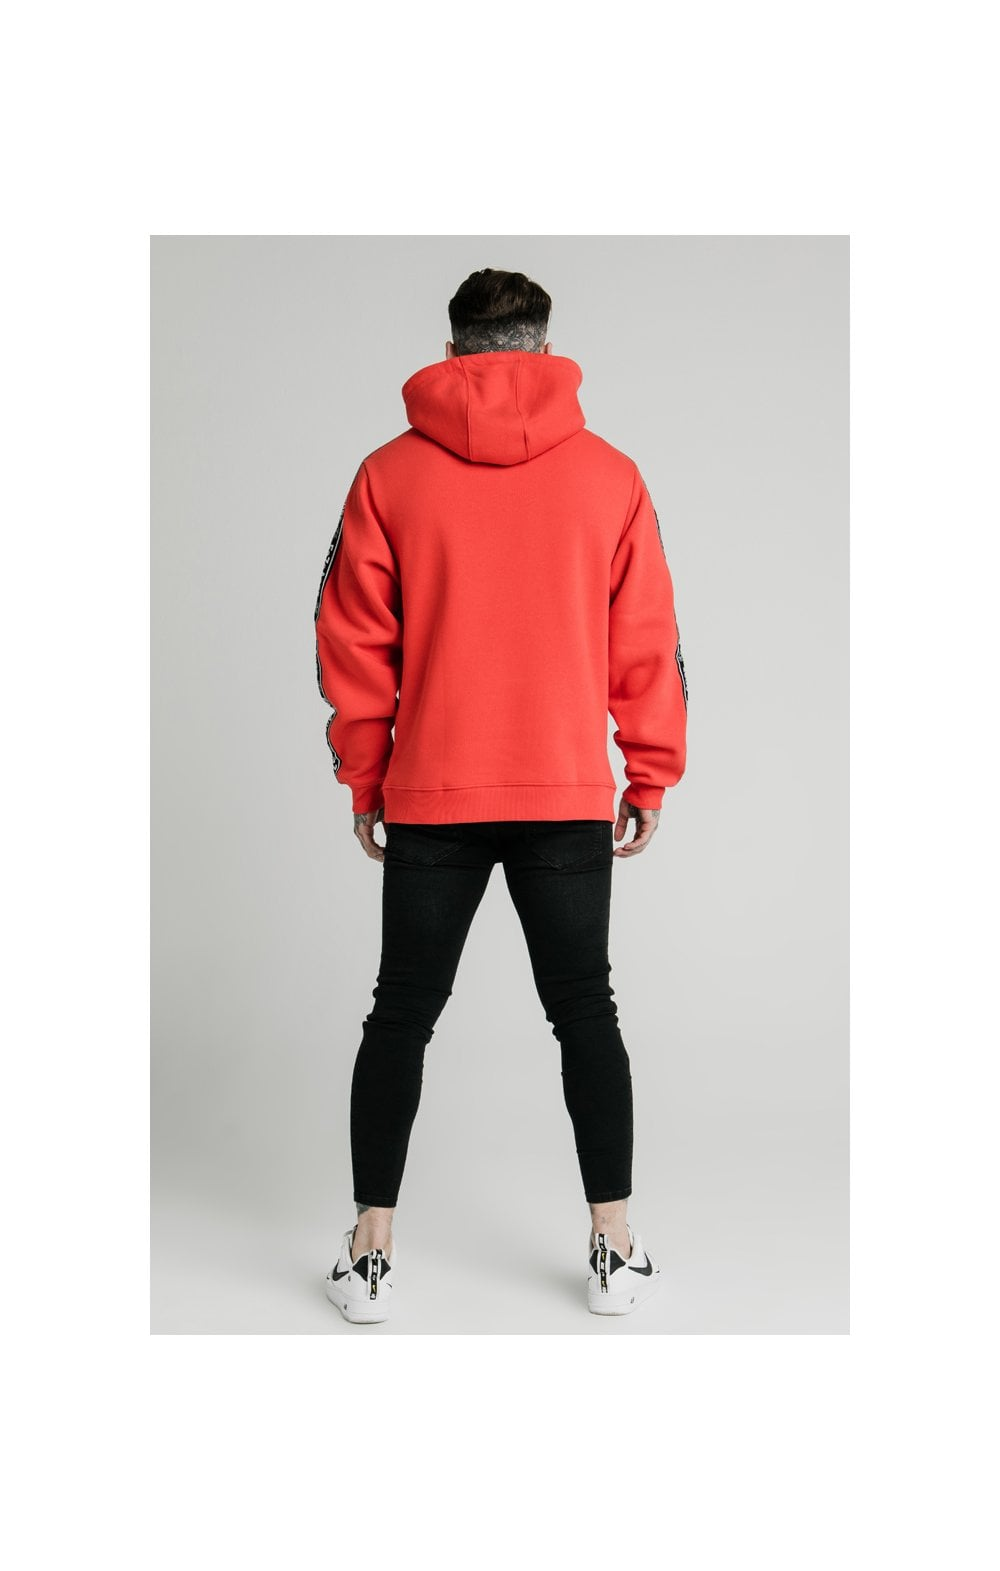 SikSilk x FaZe Apex Sweat à Capuche - Rouge (6)